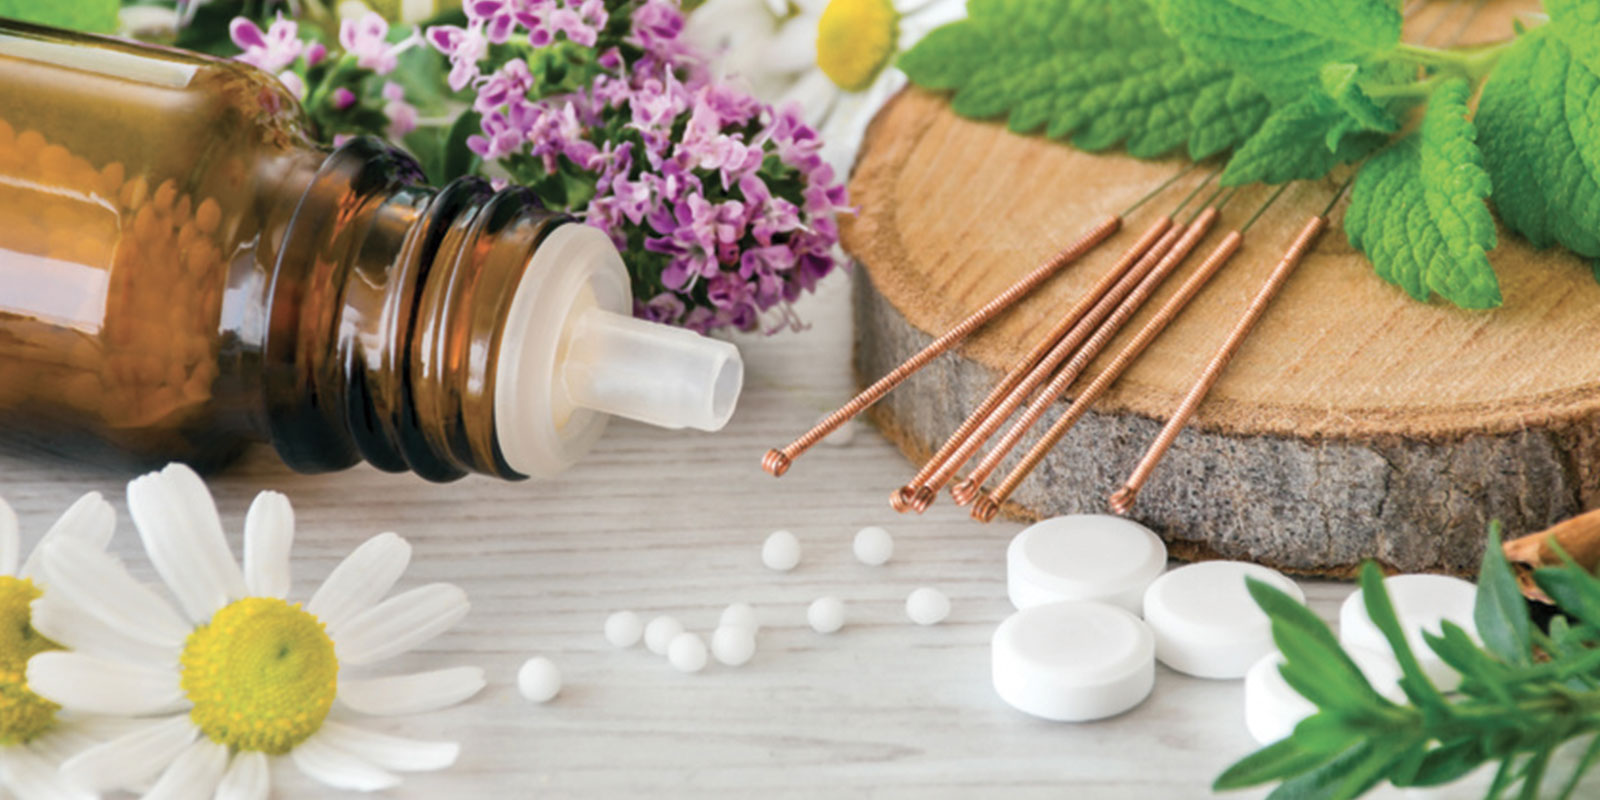 homeopathie-marolles-les-braults-alencon-mamers